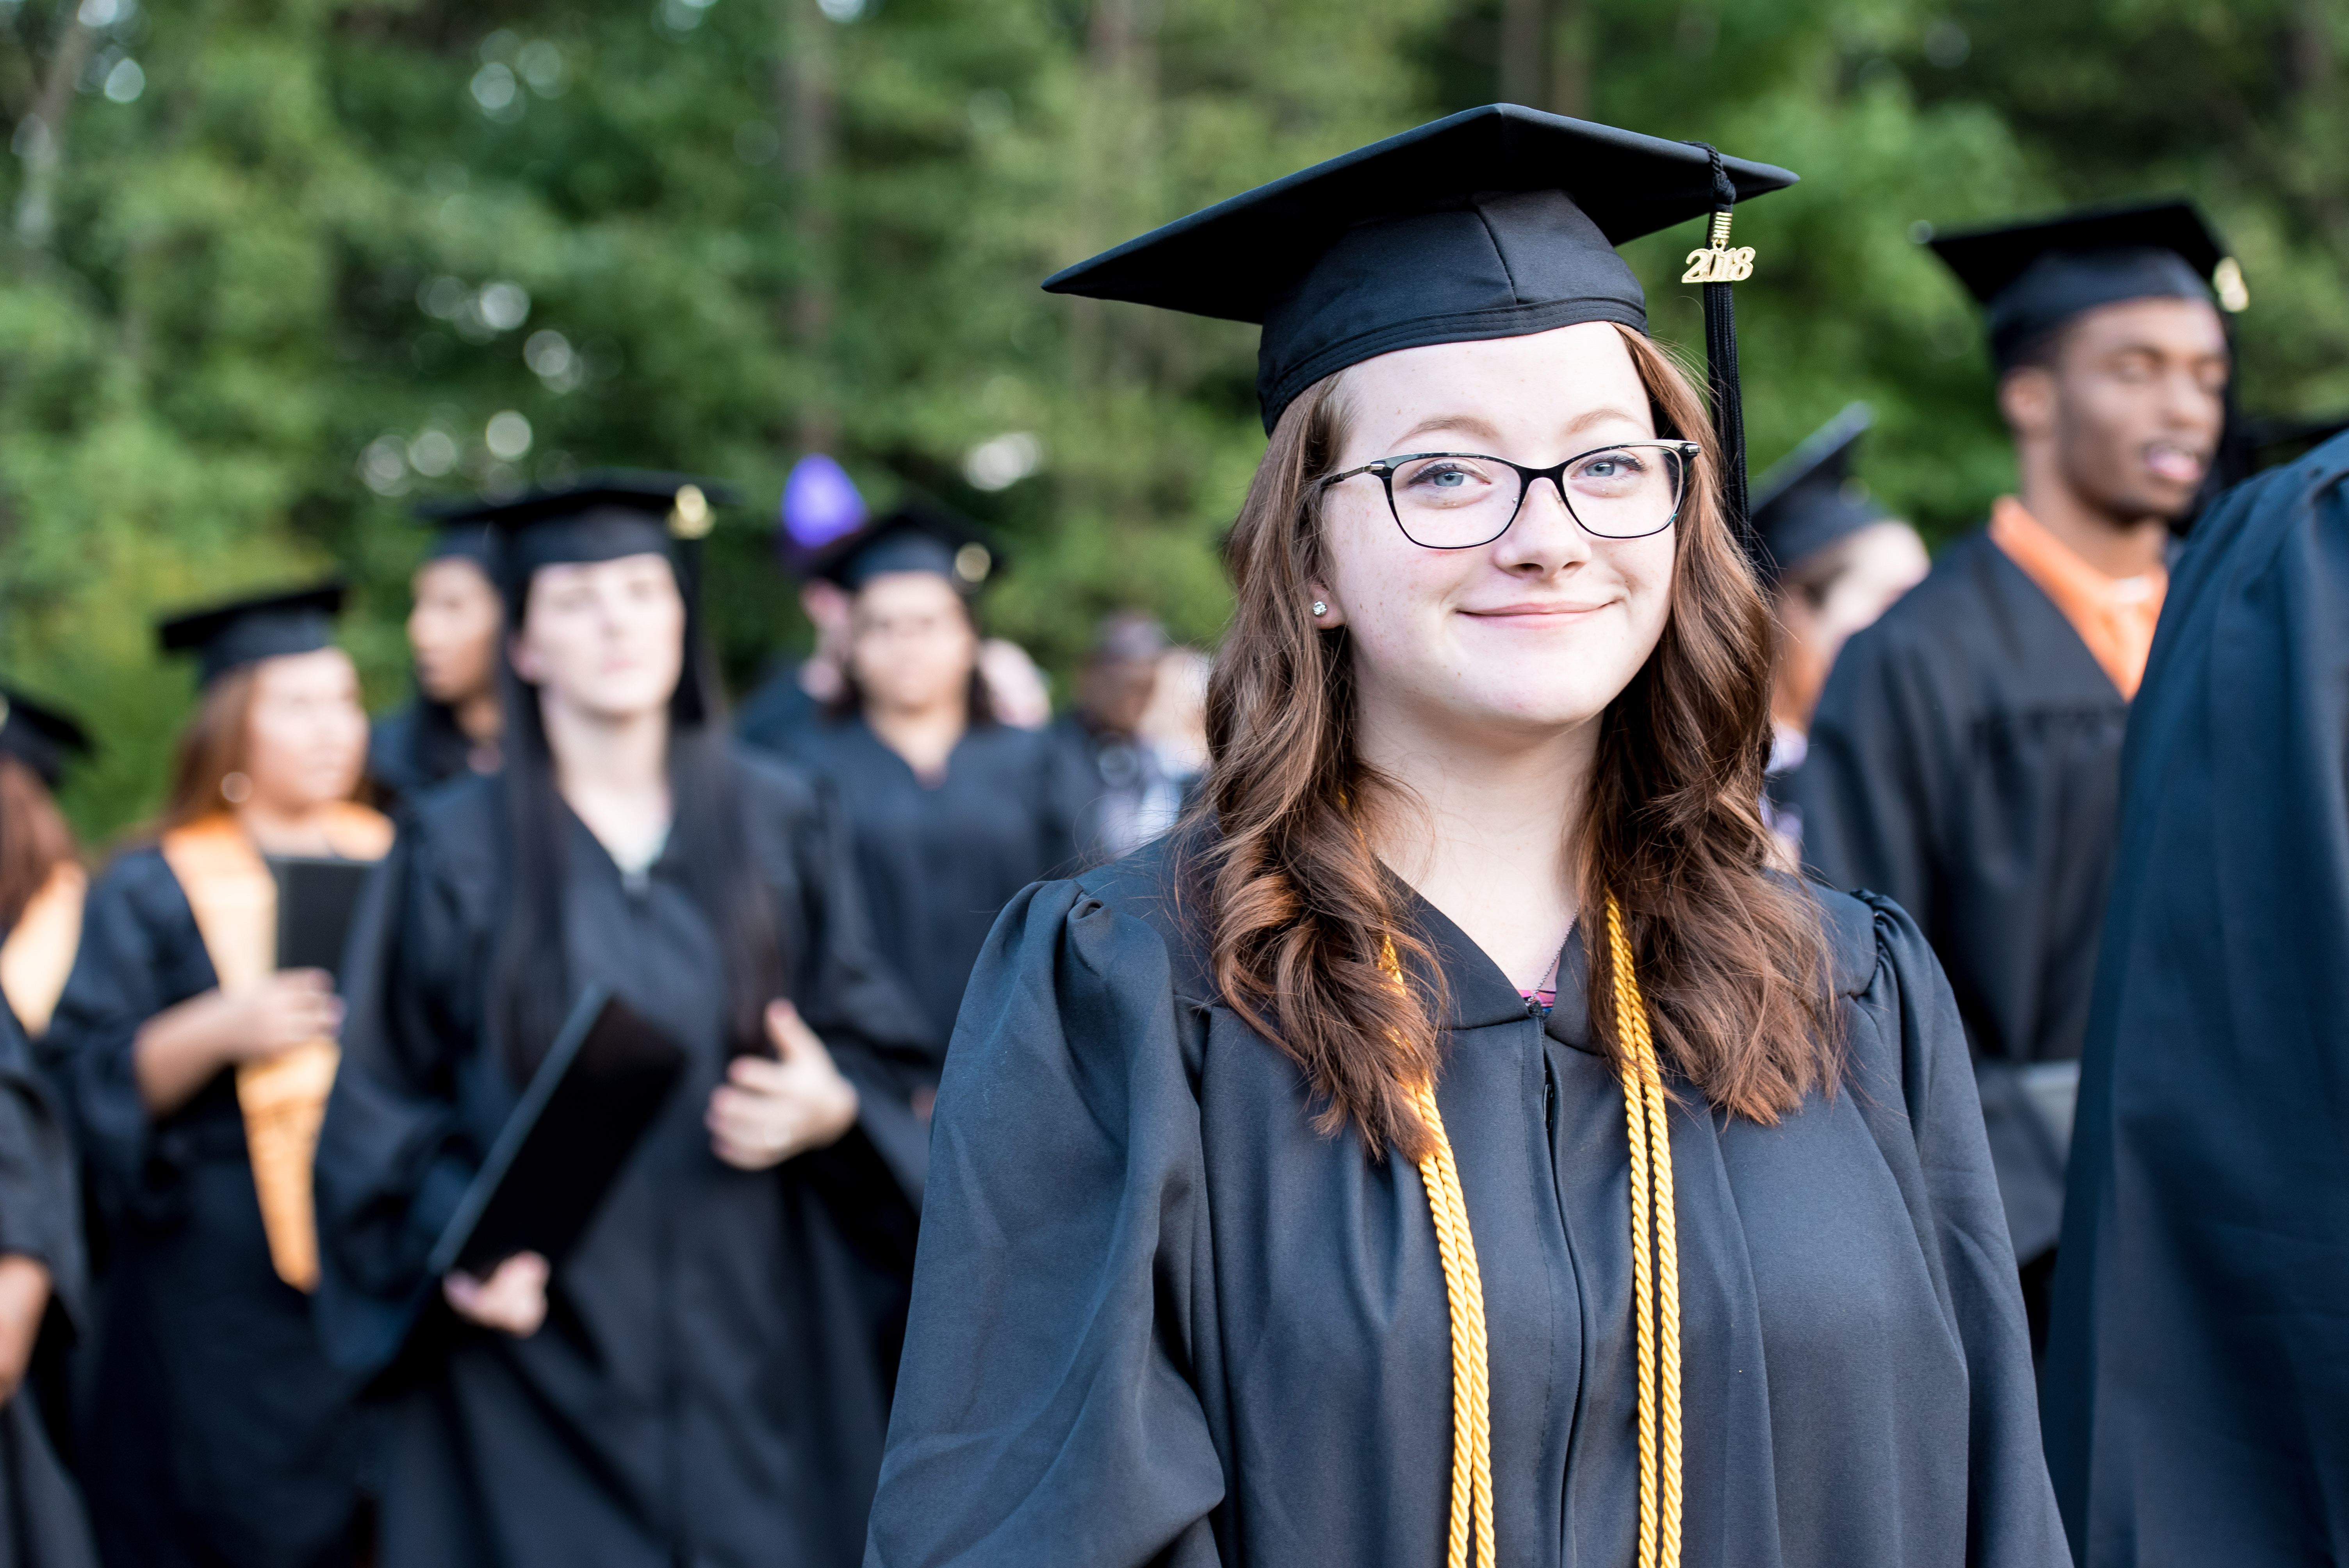 JCC celebrated its 2017-18 high school equivalency graduates with a ceremony on August 9.